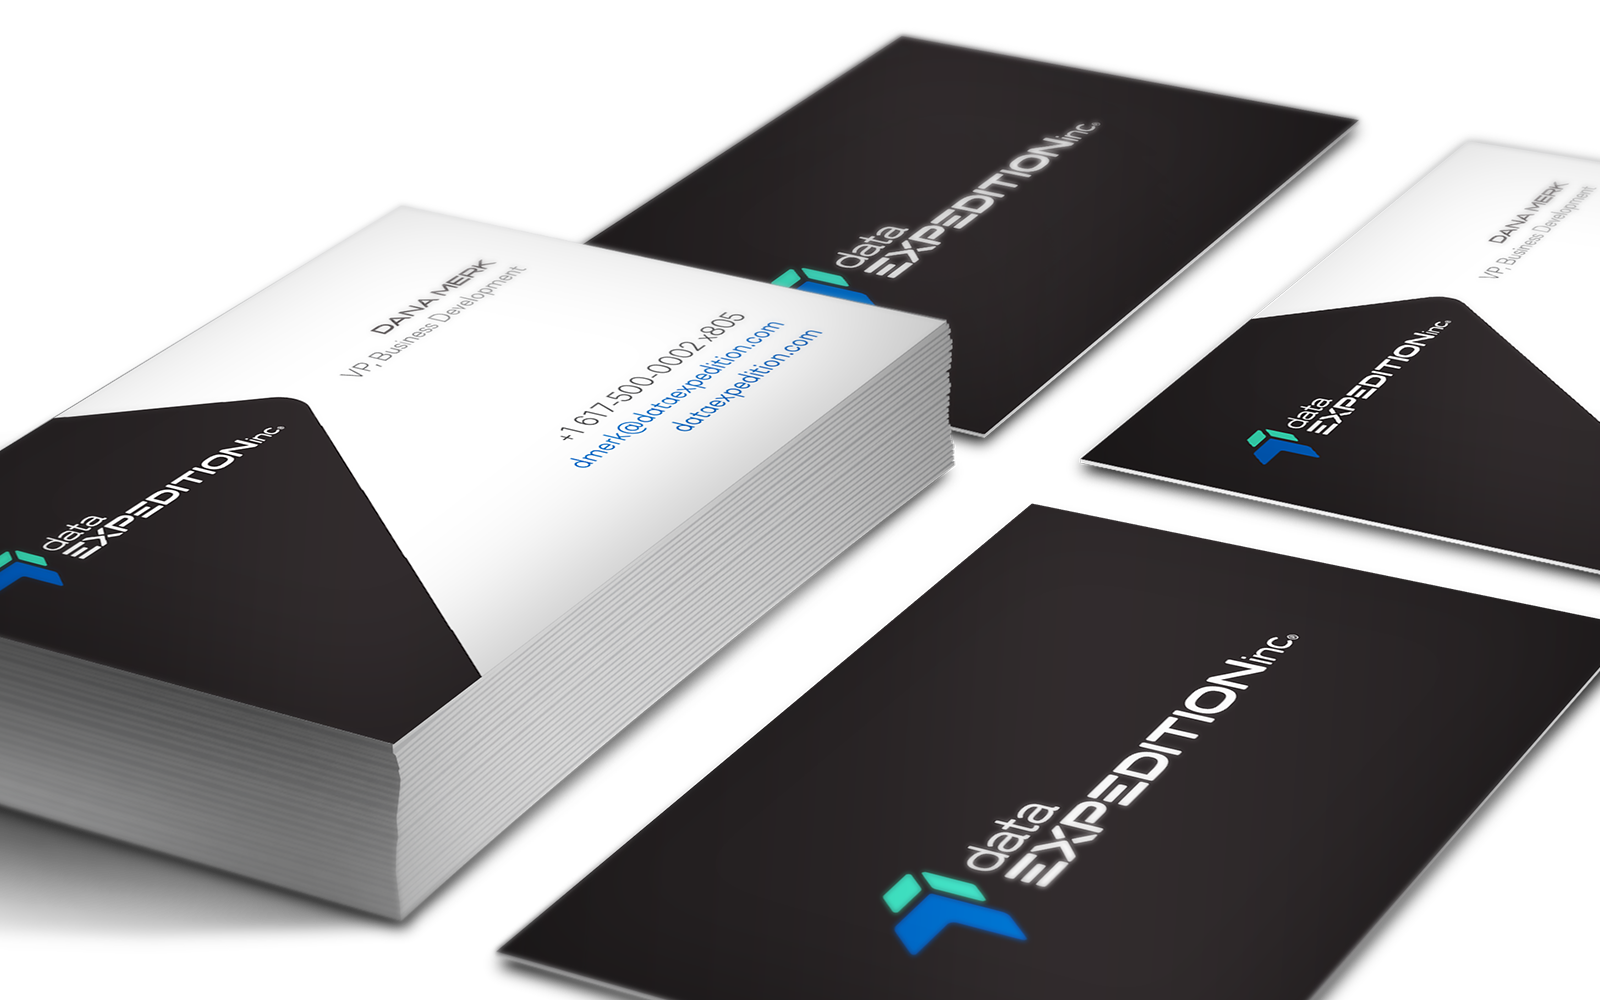 Data Expedition - Business Card Design